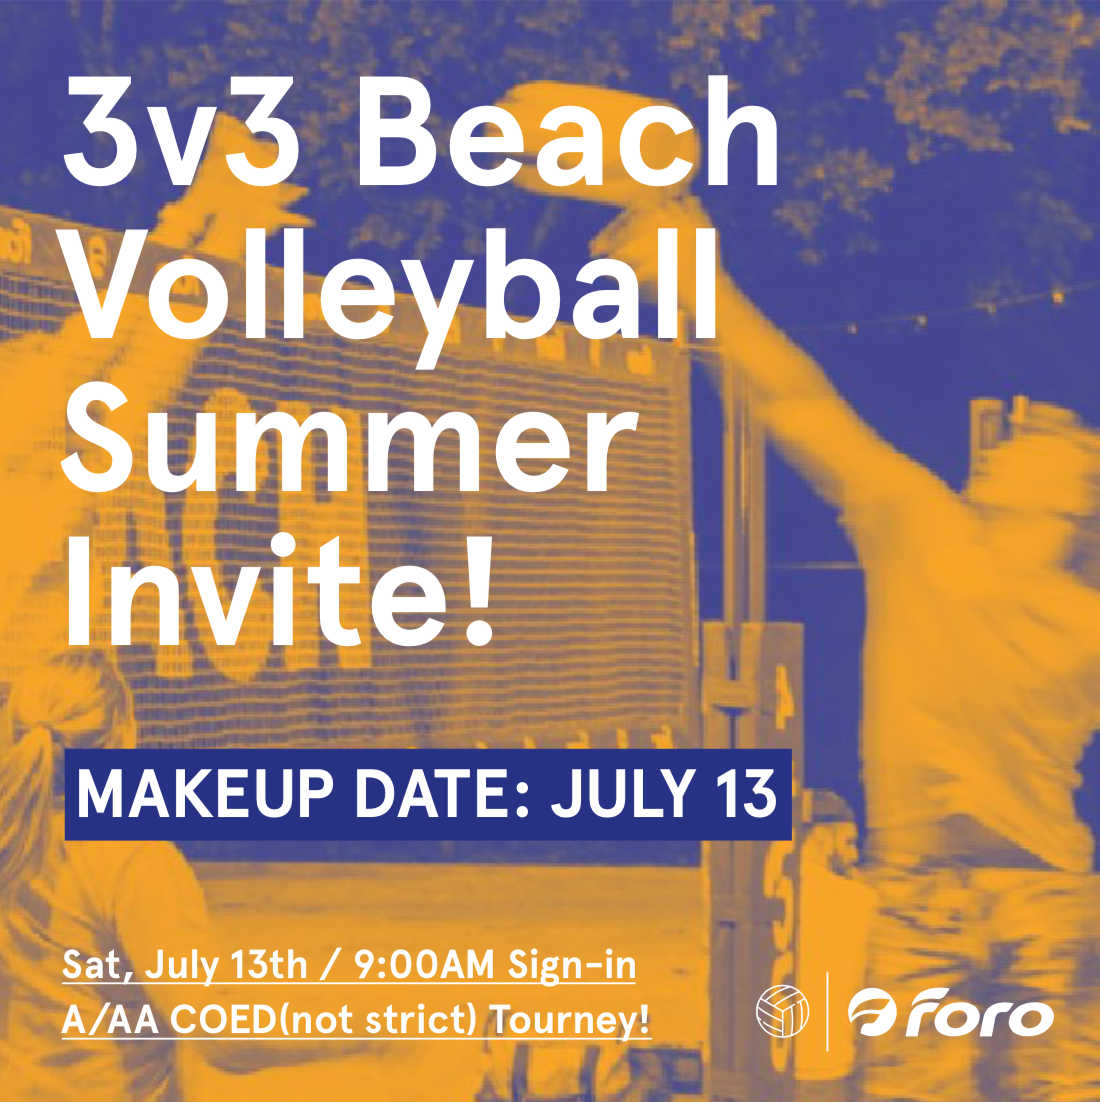 3v3 Vball Tourney Makeup - Foro 3v3 Beach Volleyball Summer Invite #2 !!!Hey, y'all! The make up date has been secured: JULY 13th!!What storm? Foro is ready to host the make up tournament! The same rules apply! 3v3 sand tournament. $15 a person. Cash prize to first place! Coed is optional! If you originally signed up then your team is already paid for!We look forward to seeing you!!Sign in will be at 9:00 AM (avoid that heat!) and the games will start at 9:30!FIRST PLACE WINS 100% of REGISTRATION FEES + 50% off team registration for our upcoming Summer Beach VBALL league! Free water provided + BYOB (one container fee)There is one division A/AADIVISION A/AA: https://bit.ly/2ISopoIPlease message Garrett Matthew to sign up!Contact: https://www.facebook.com/garrett.matthewvirginYou can also message info@forosportsclub.com to sign up!